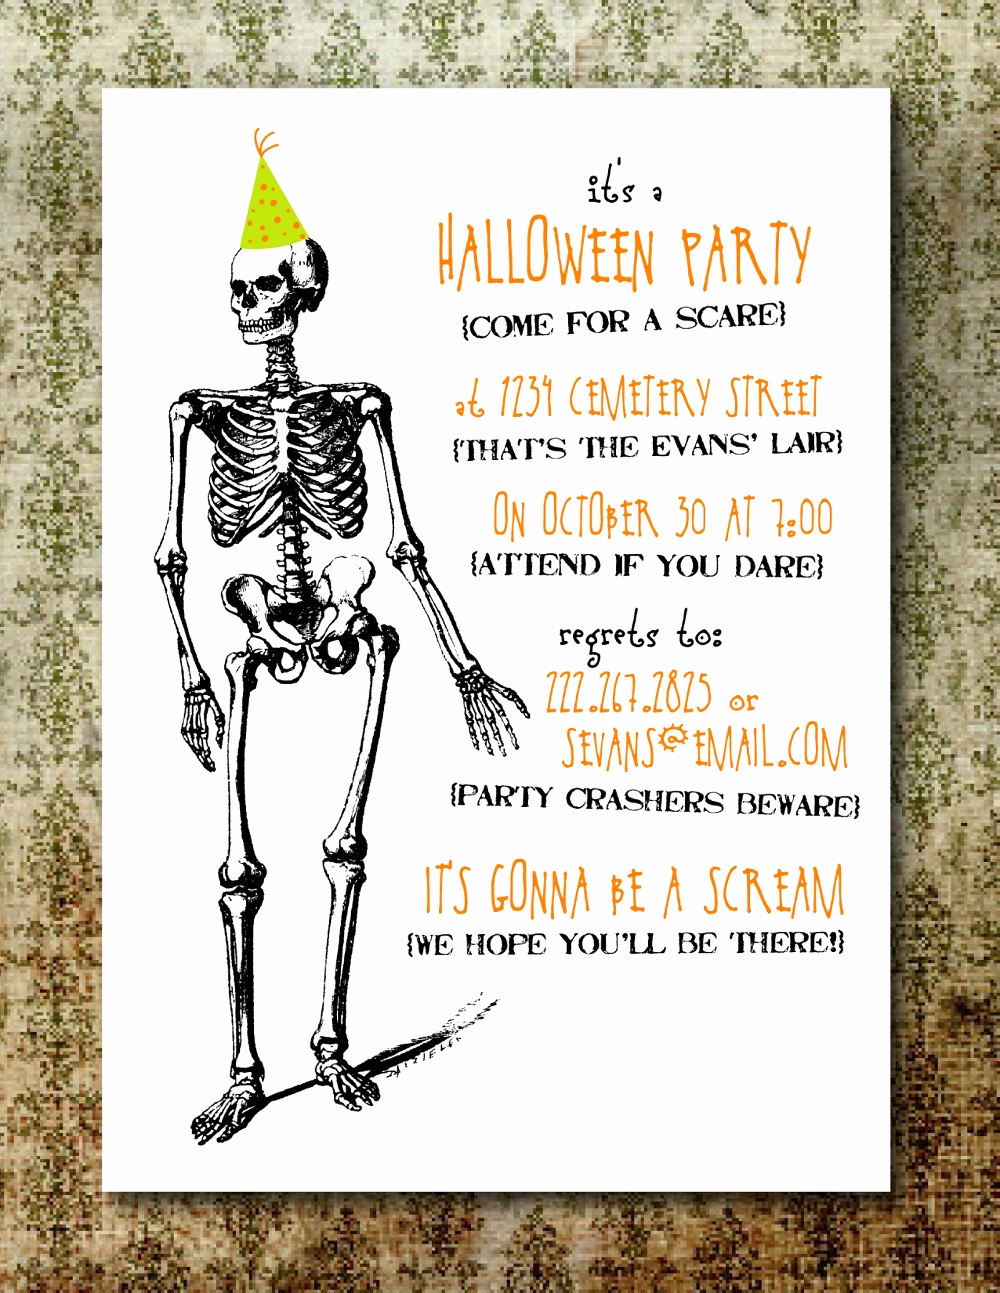 Halloween Party Invite Template Unique Printable Spooky Halloween Party Invitation